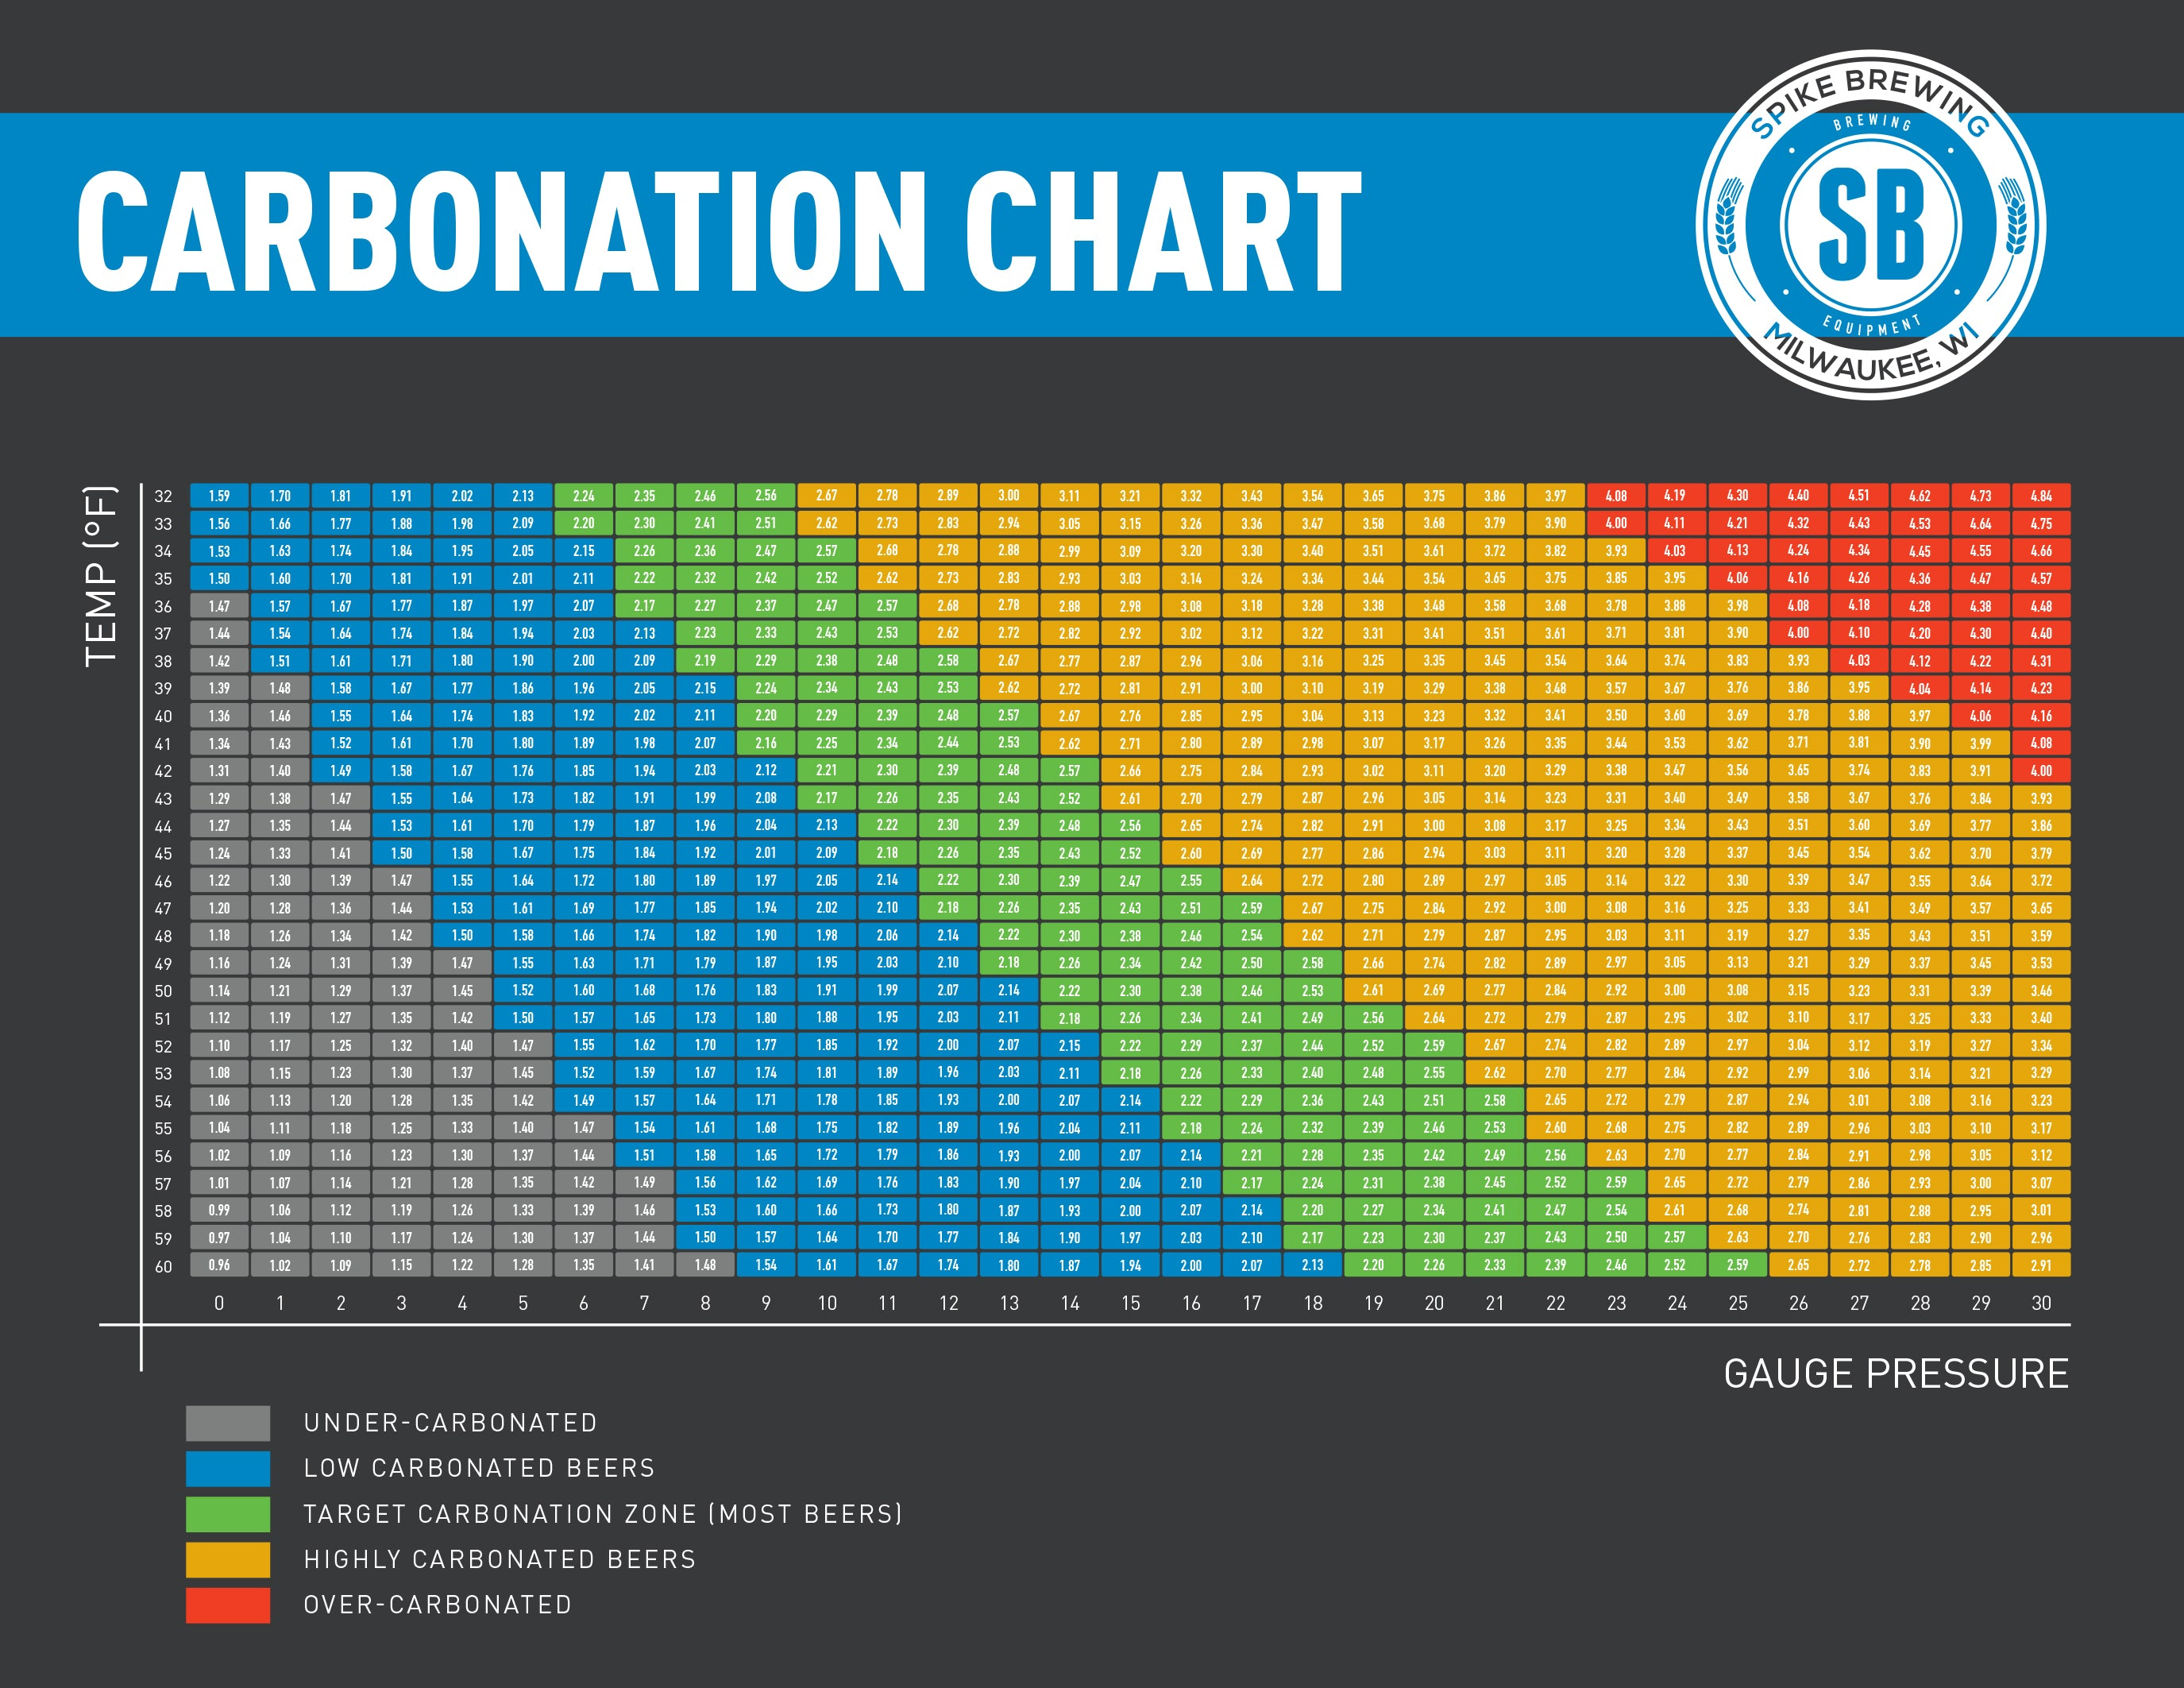 Forced carbonation chart